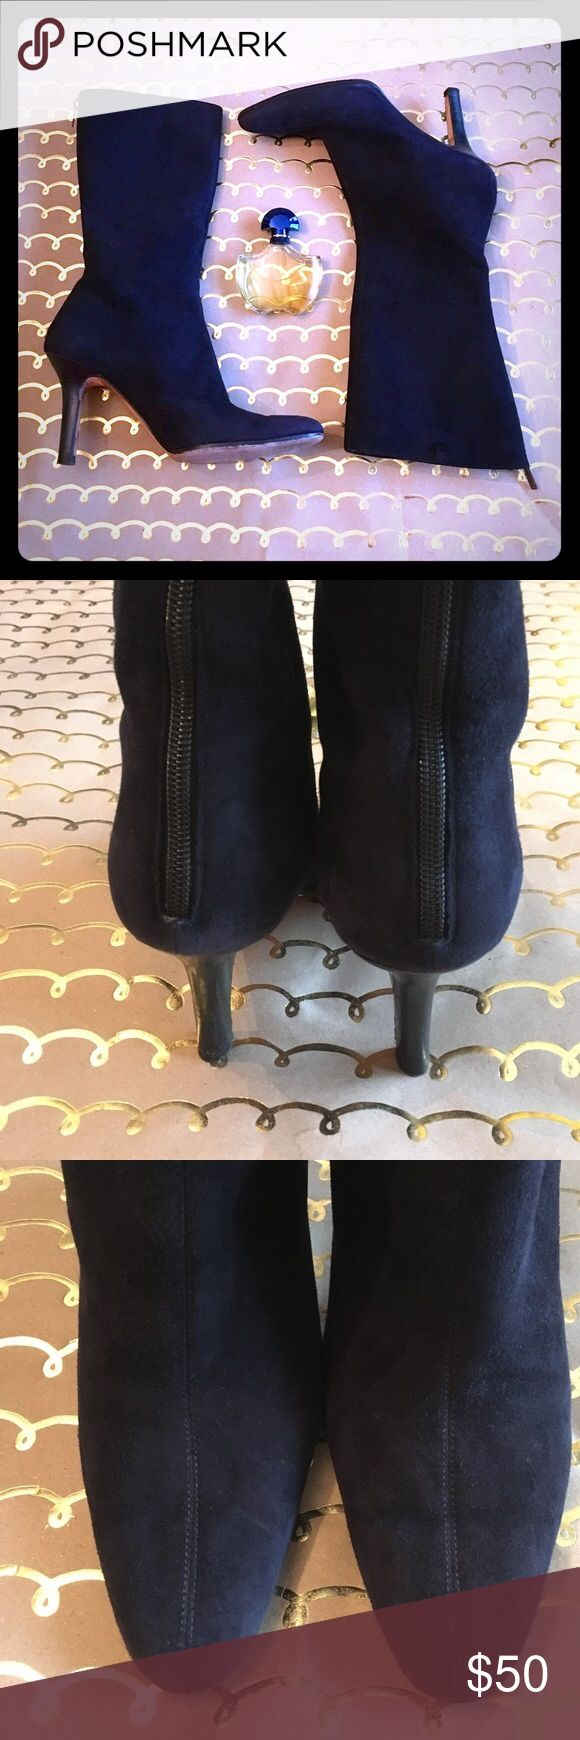 """Navy Blue Mid Calf Jimmy Choo Suede Boots! Reposh! So cute! The seam on the front of these soft suede booties is really what makes them extra chic! The box toe and exposed zipper exaggerated the uniqueness of these beauties. Reposh from @Britannea because they were a bit too big for me! 10"""" shaft, 3.5"""" heel, 6"""" flat tops! Jimmy Choo Shoes Heeled Boots"""